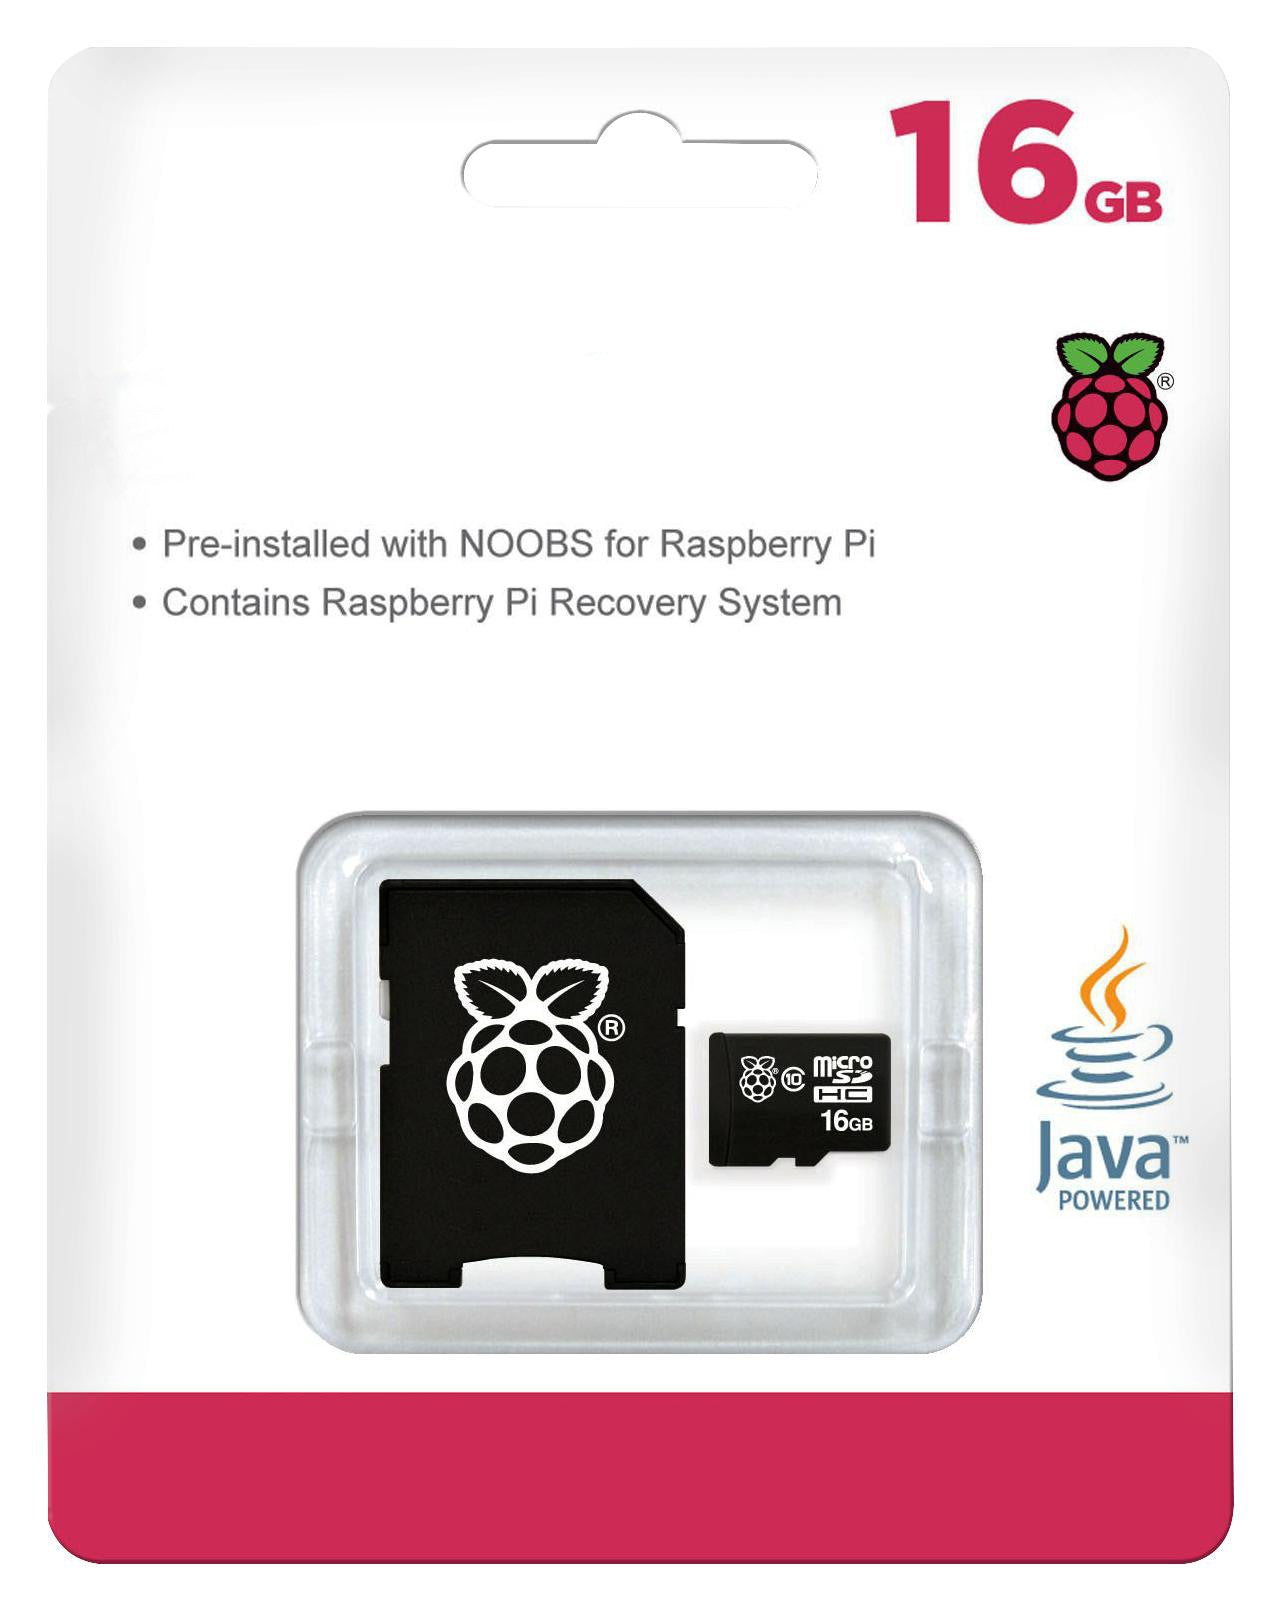 Raspberry 16GB Micro Sd Pre-installed NOOBS for Raspberry Pi Software - BNR Industrial